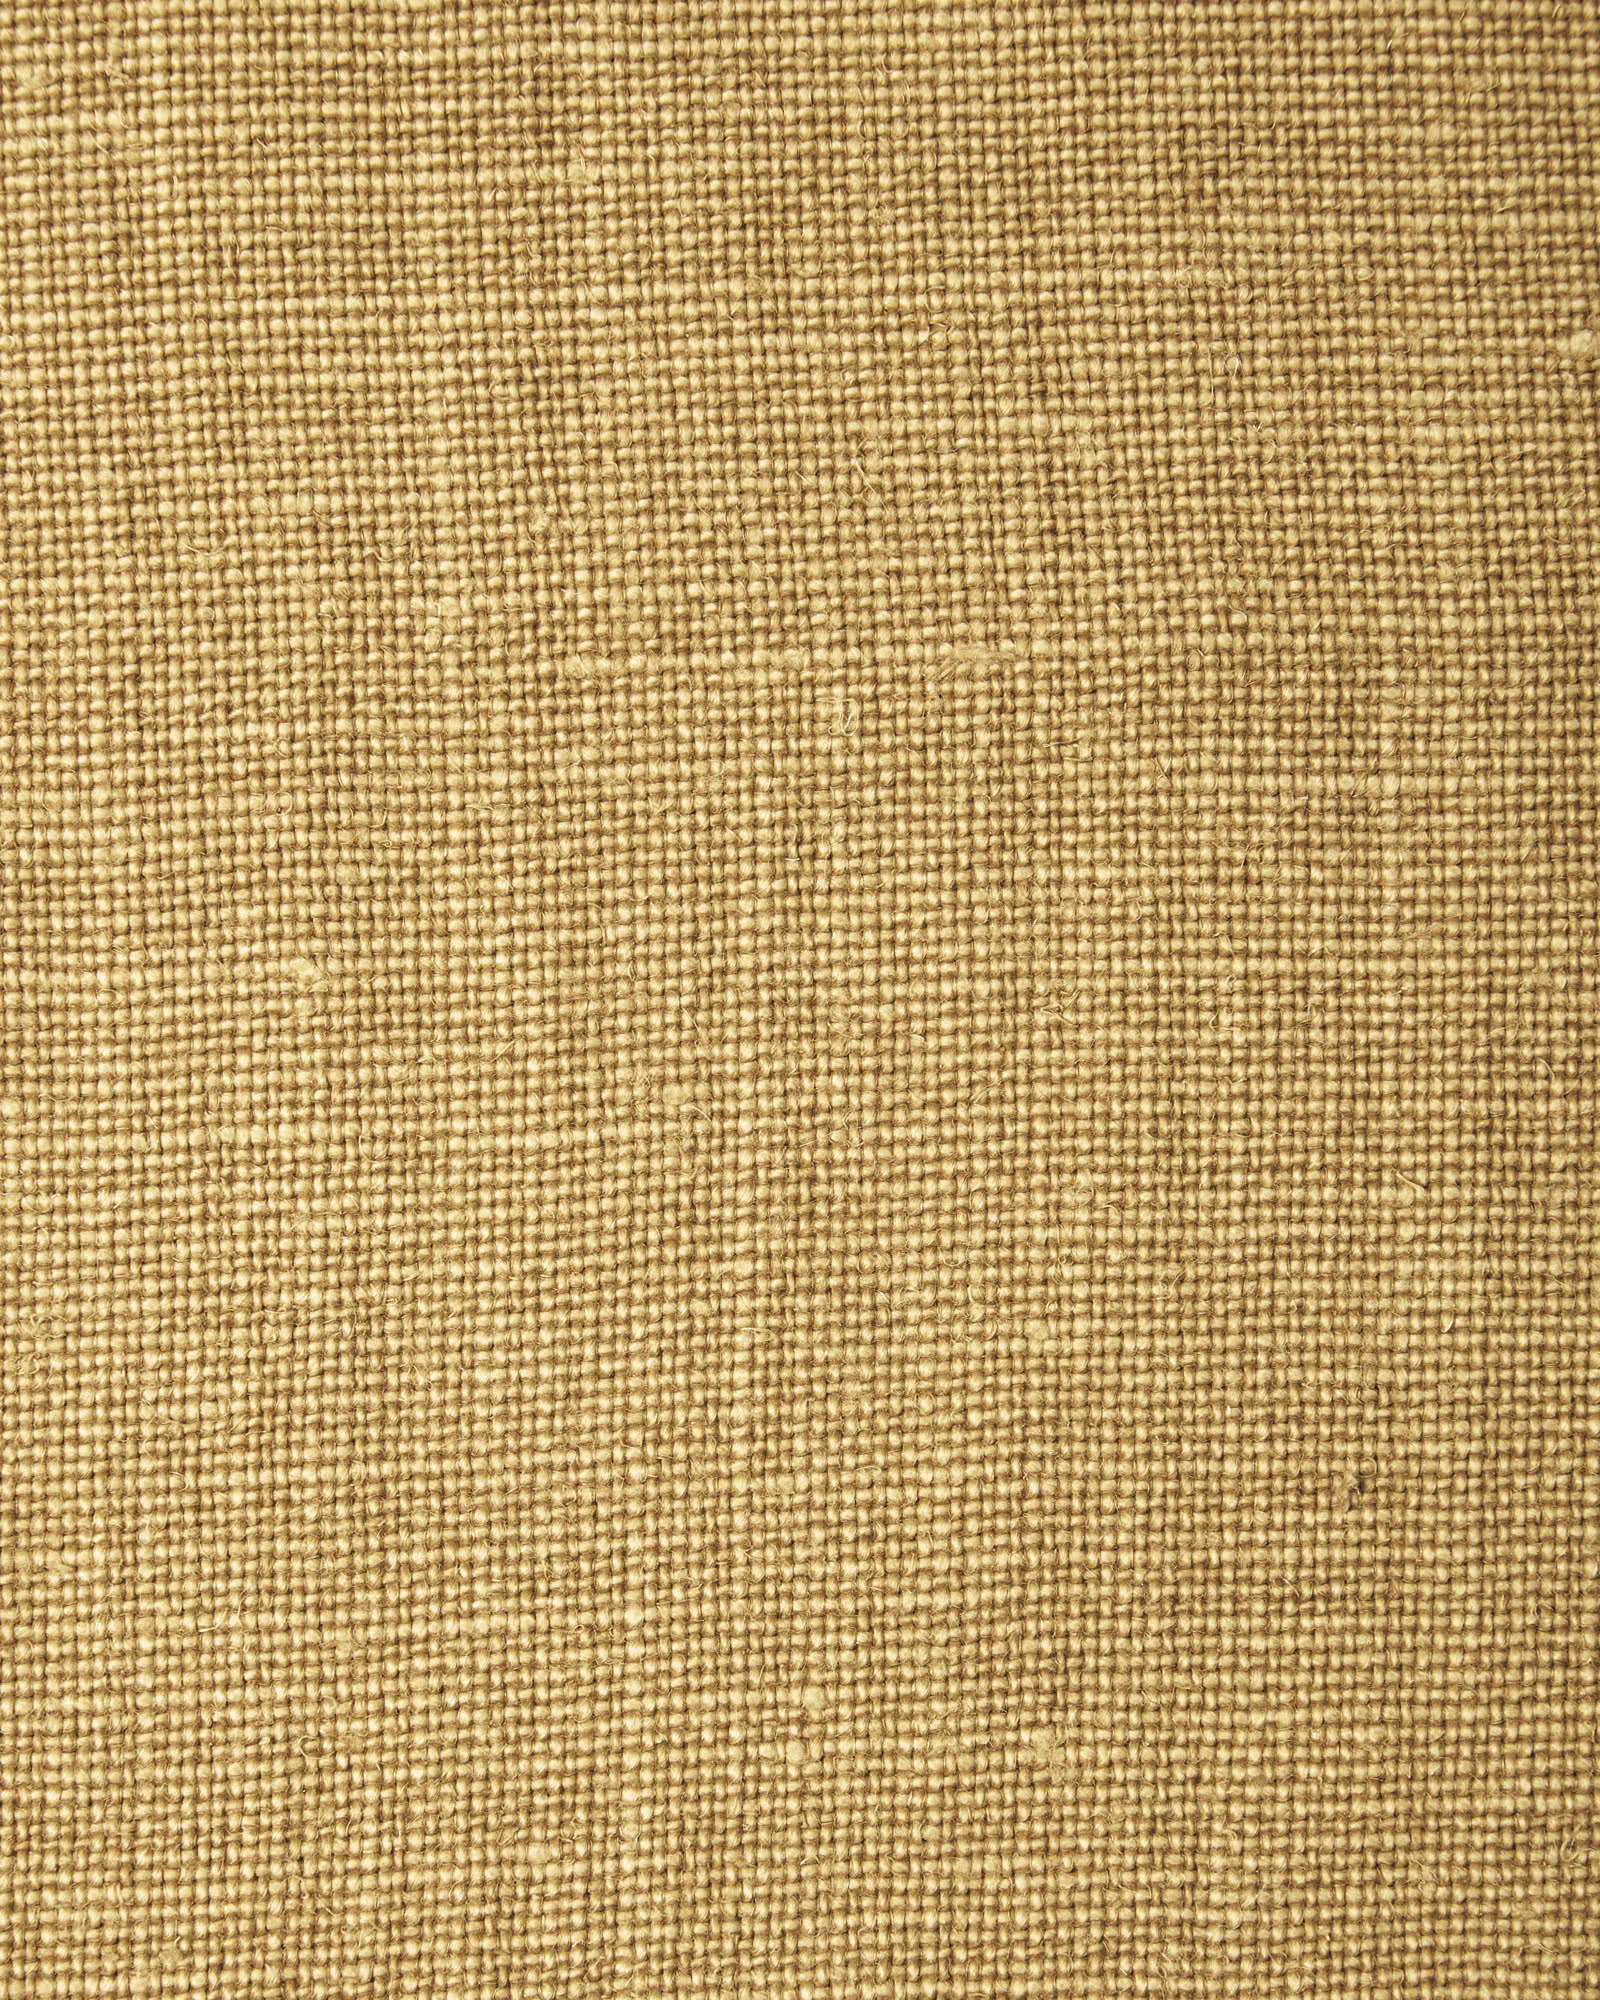 Washed Linen Gold Serena Amp Lily